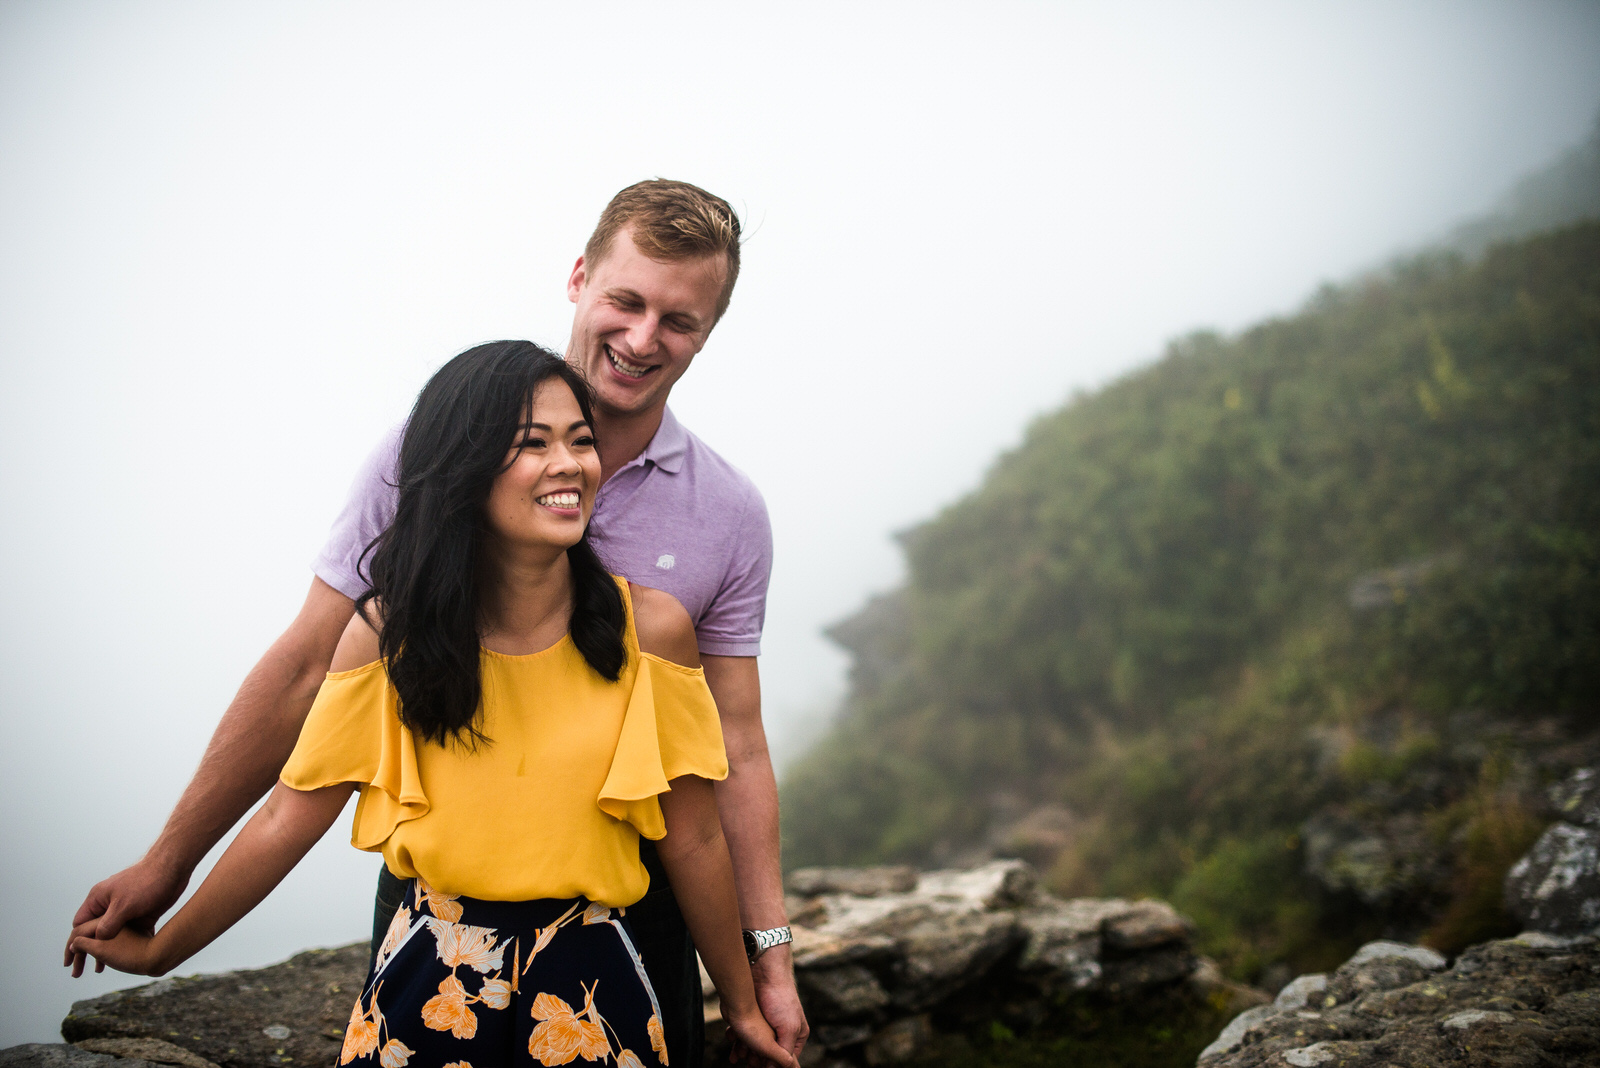 Craggy-Gardens-Engagement-Session-52.jpg